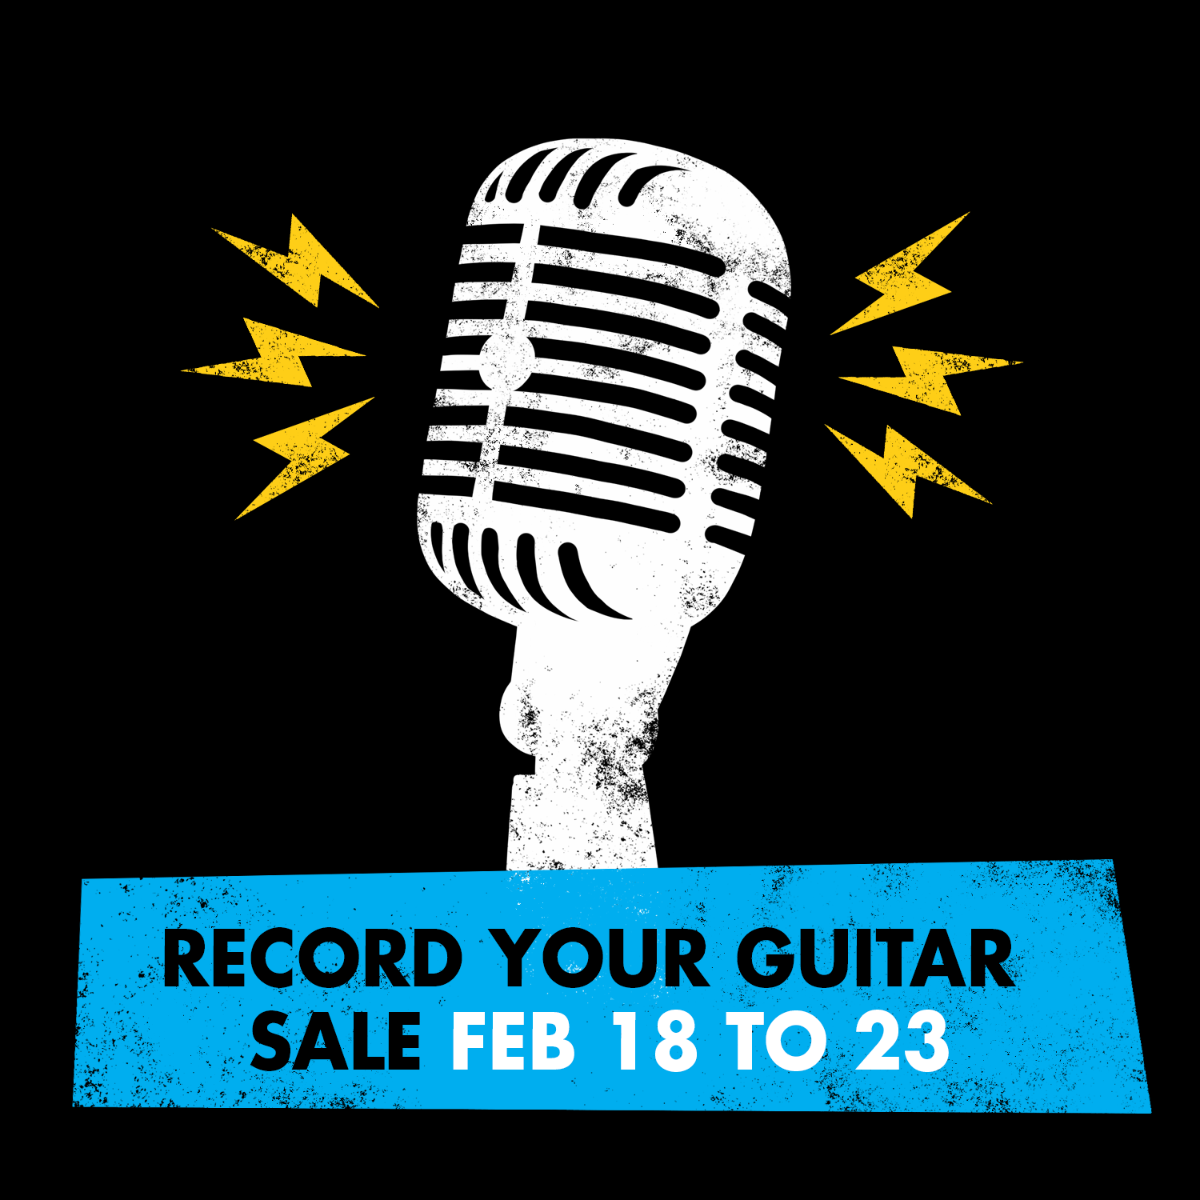 Guitar Month - Record Your Guitar Sales